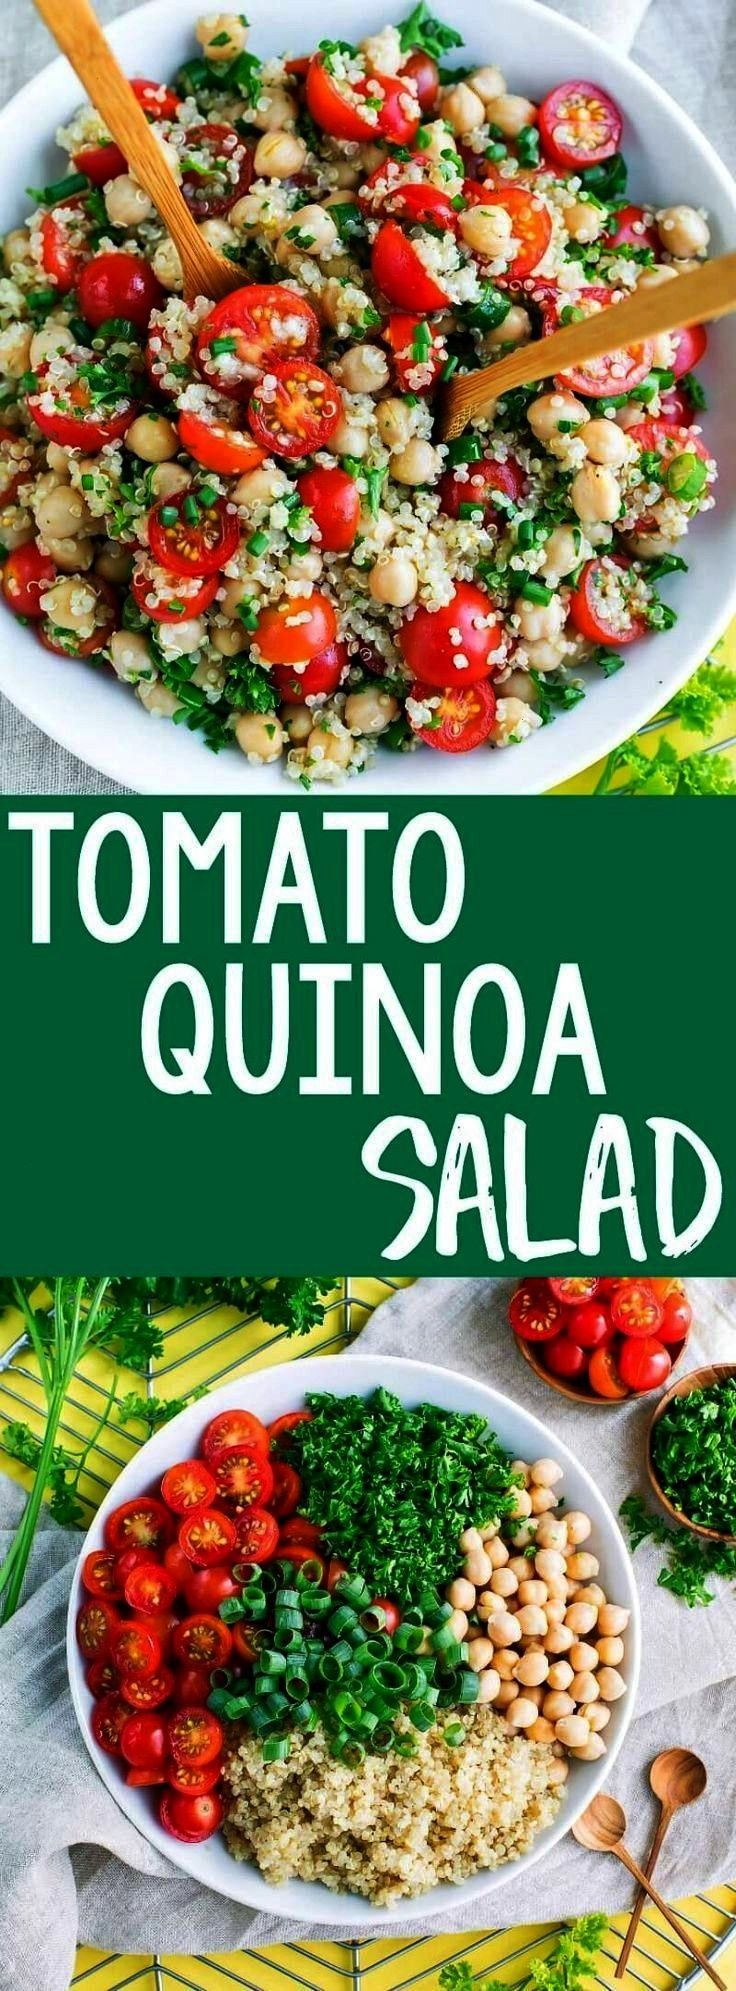 Salad Its time to add another tasty quinoa recipe to our meal prep game! This Tomato Quinoa Salad